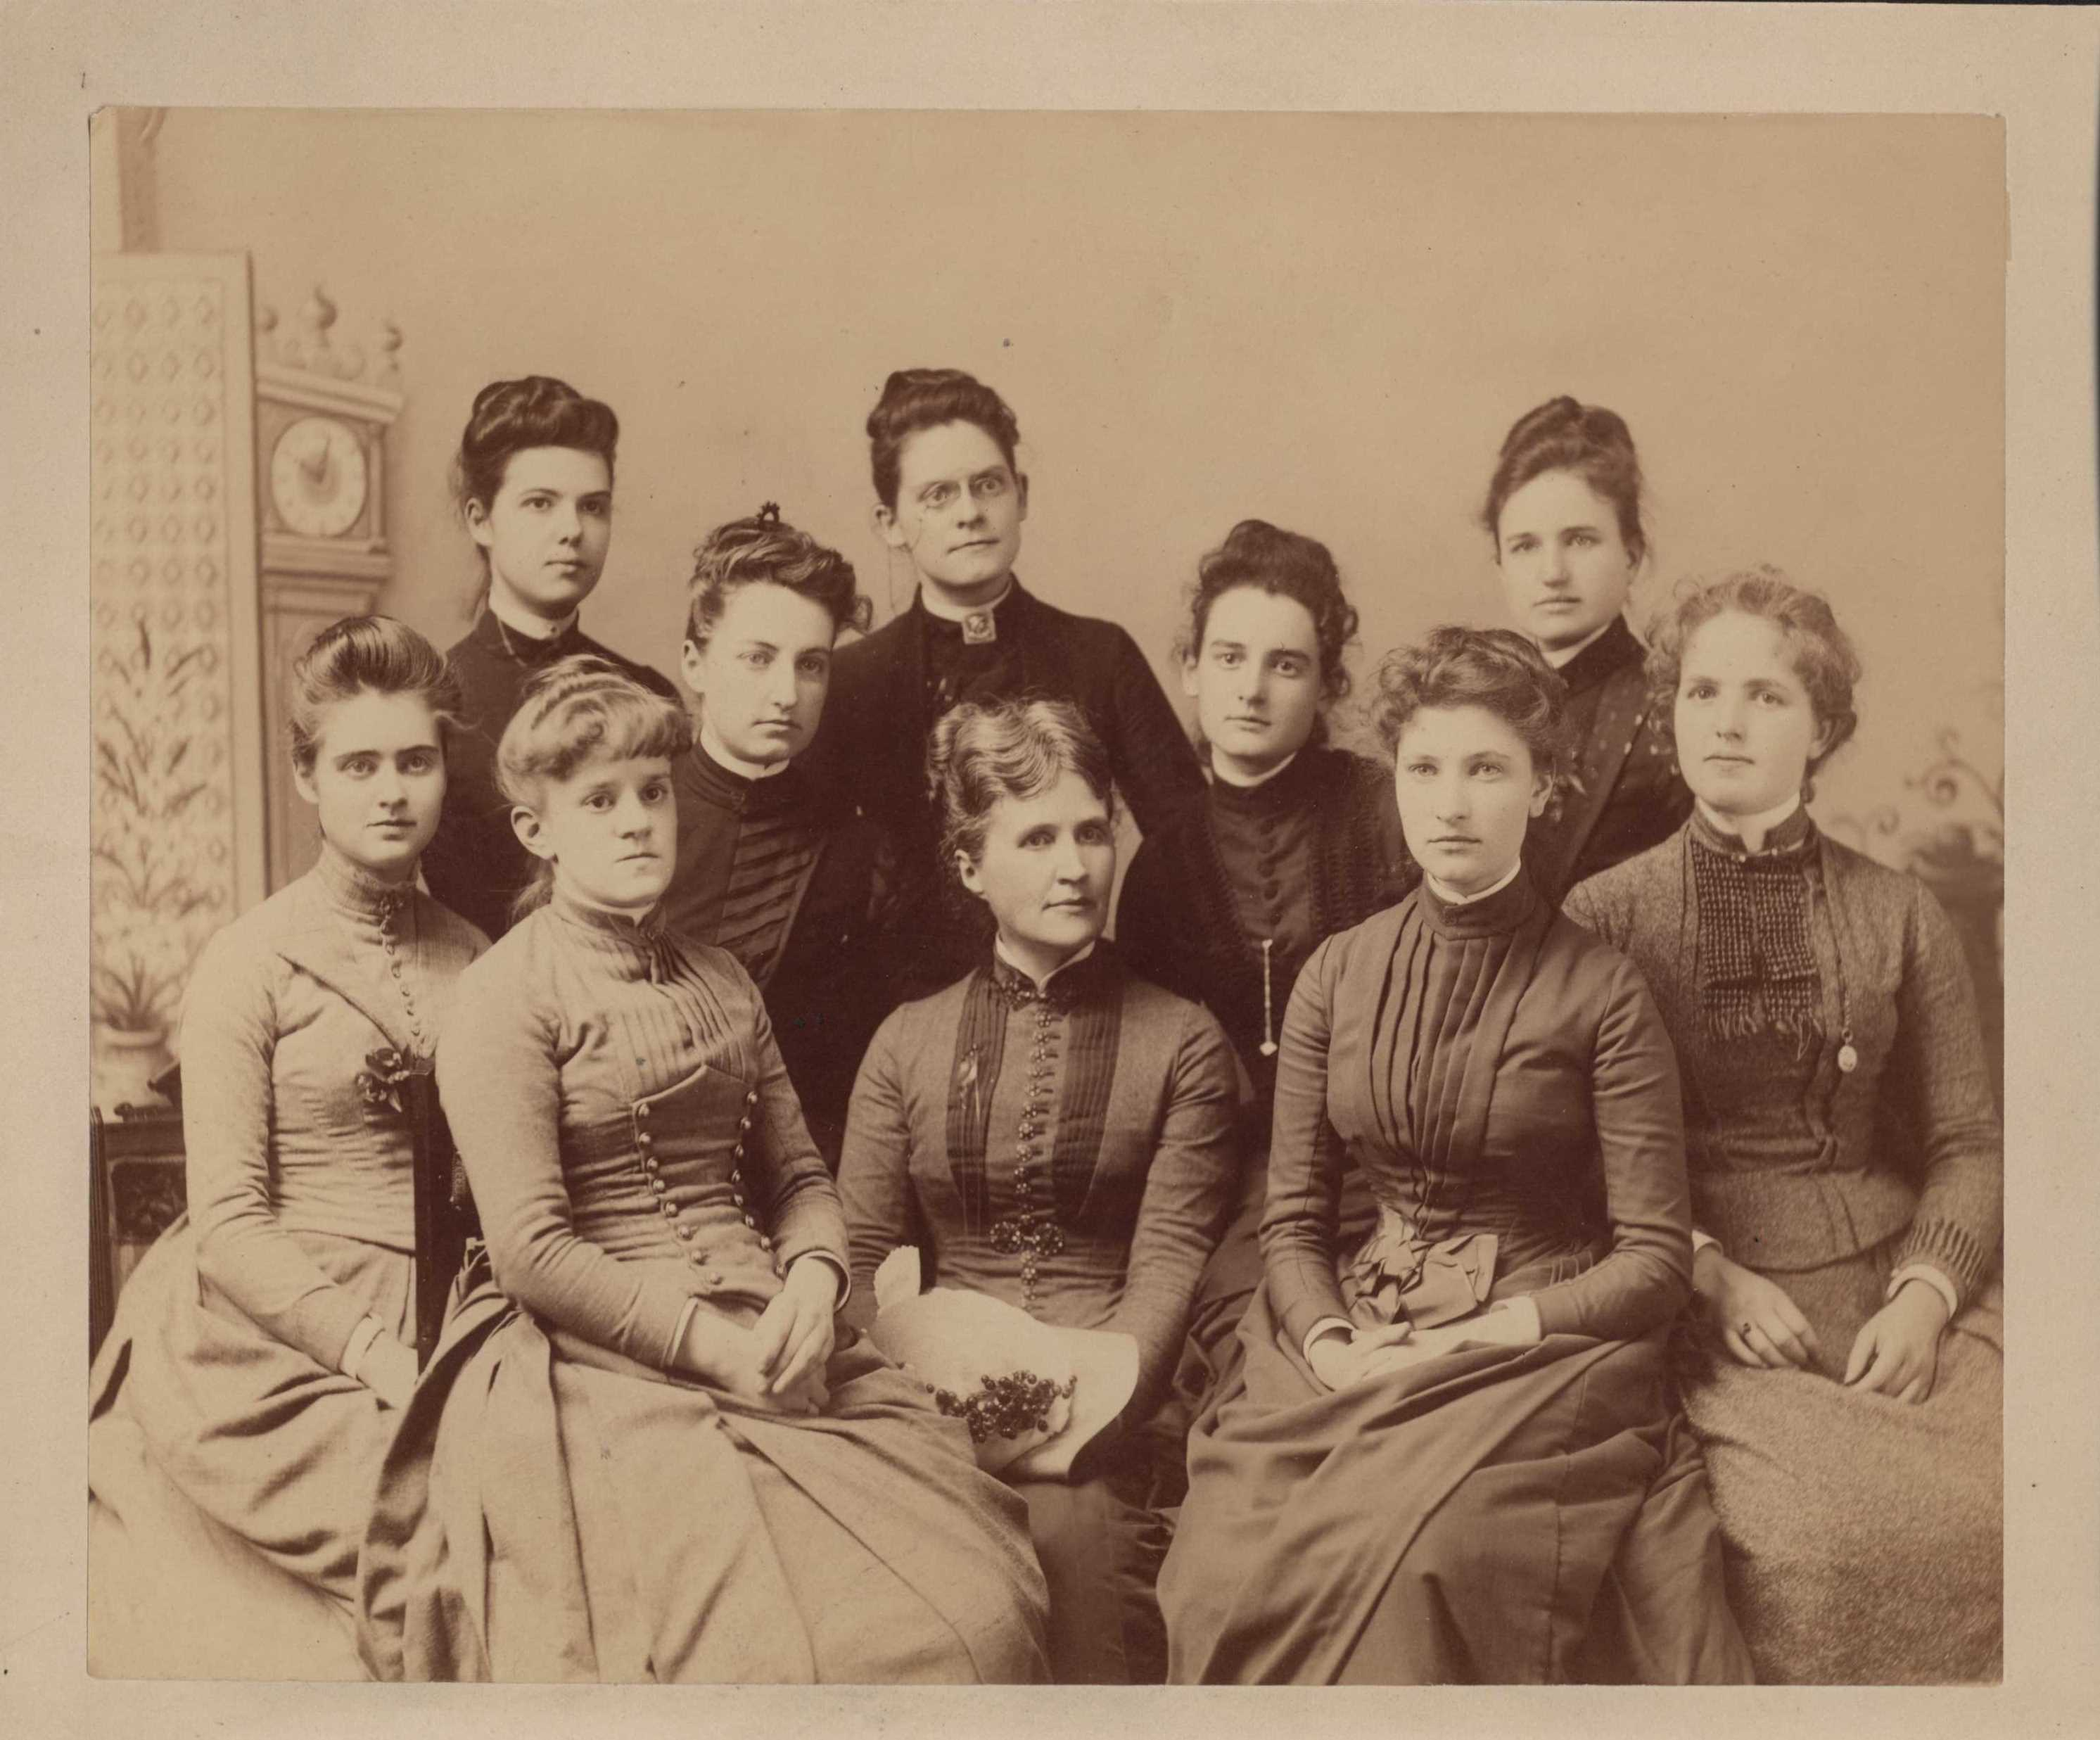 Class Photo of the Class of 1888